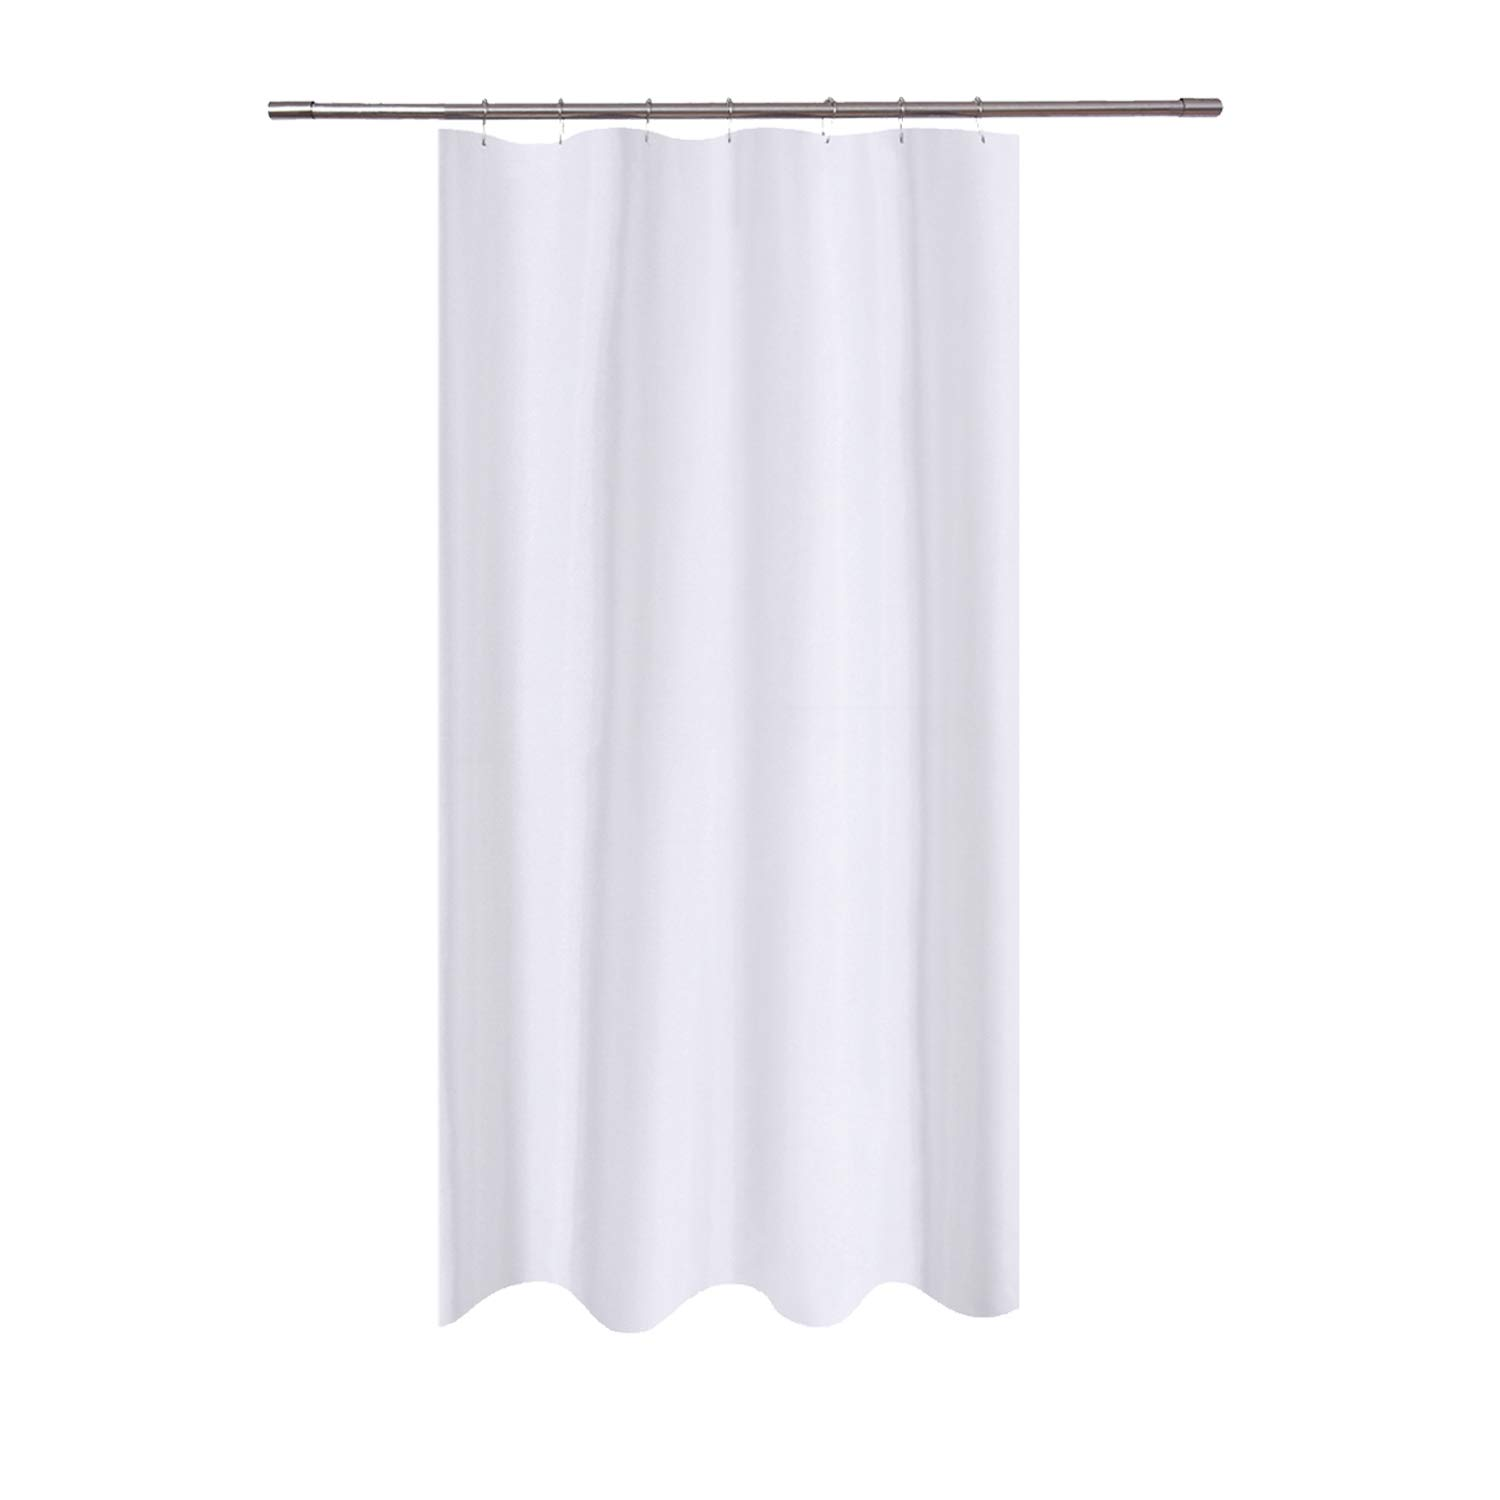 N&Y HOME Fabric Shower Curtain Liner 40 x 72 inches Bath Stall Size, Hotel Quality, Washable, Water Repellent, White Spa Bathroom Curtains with Grommets, 40x72